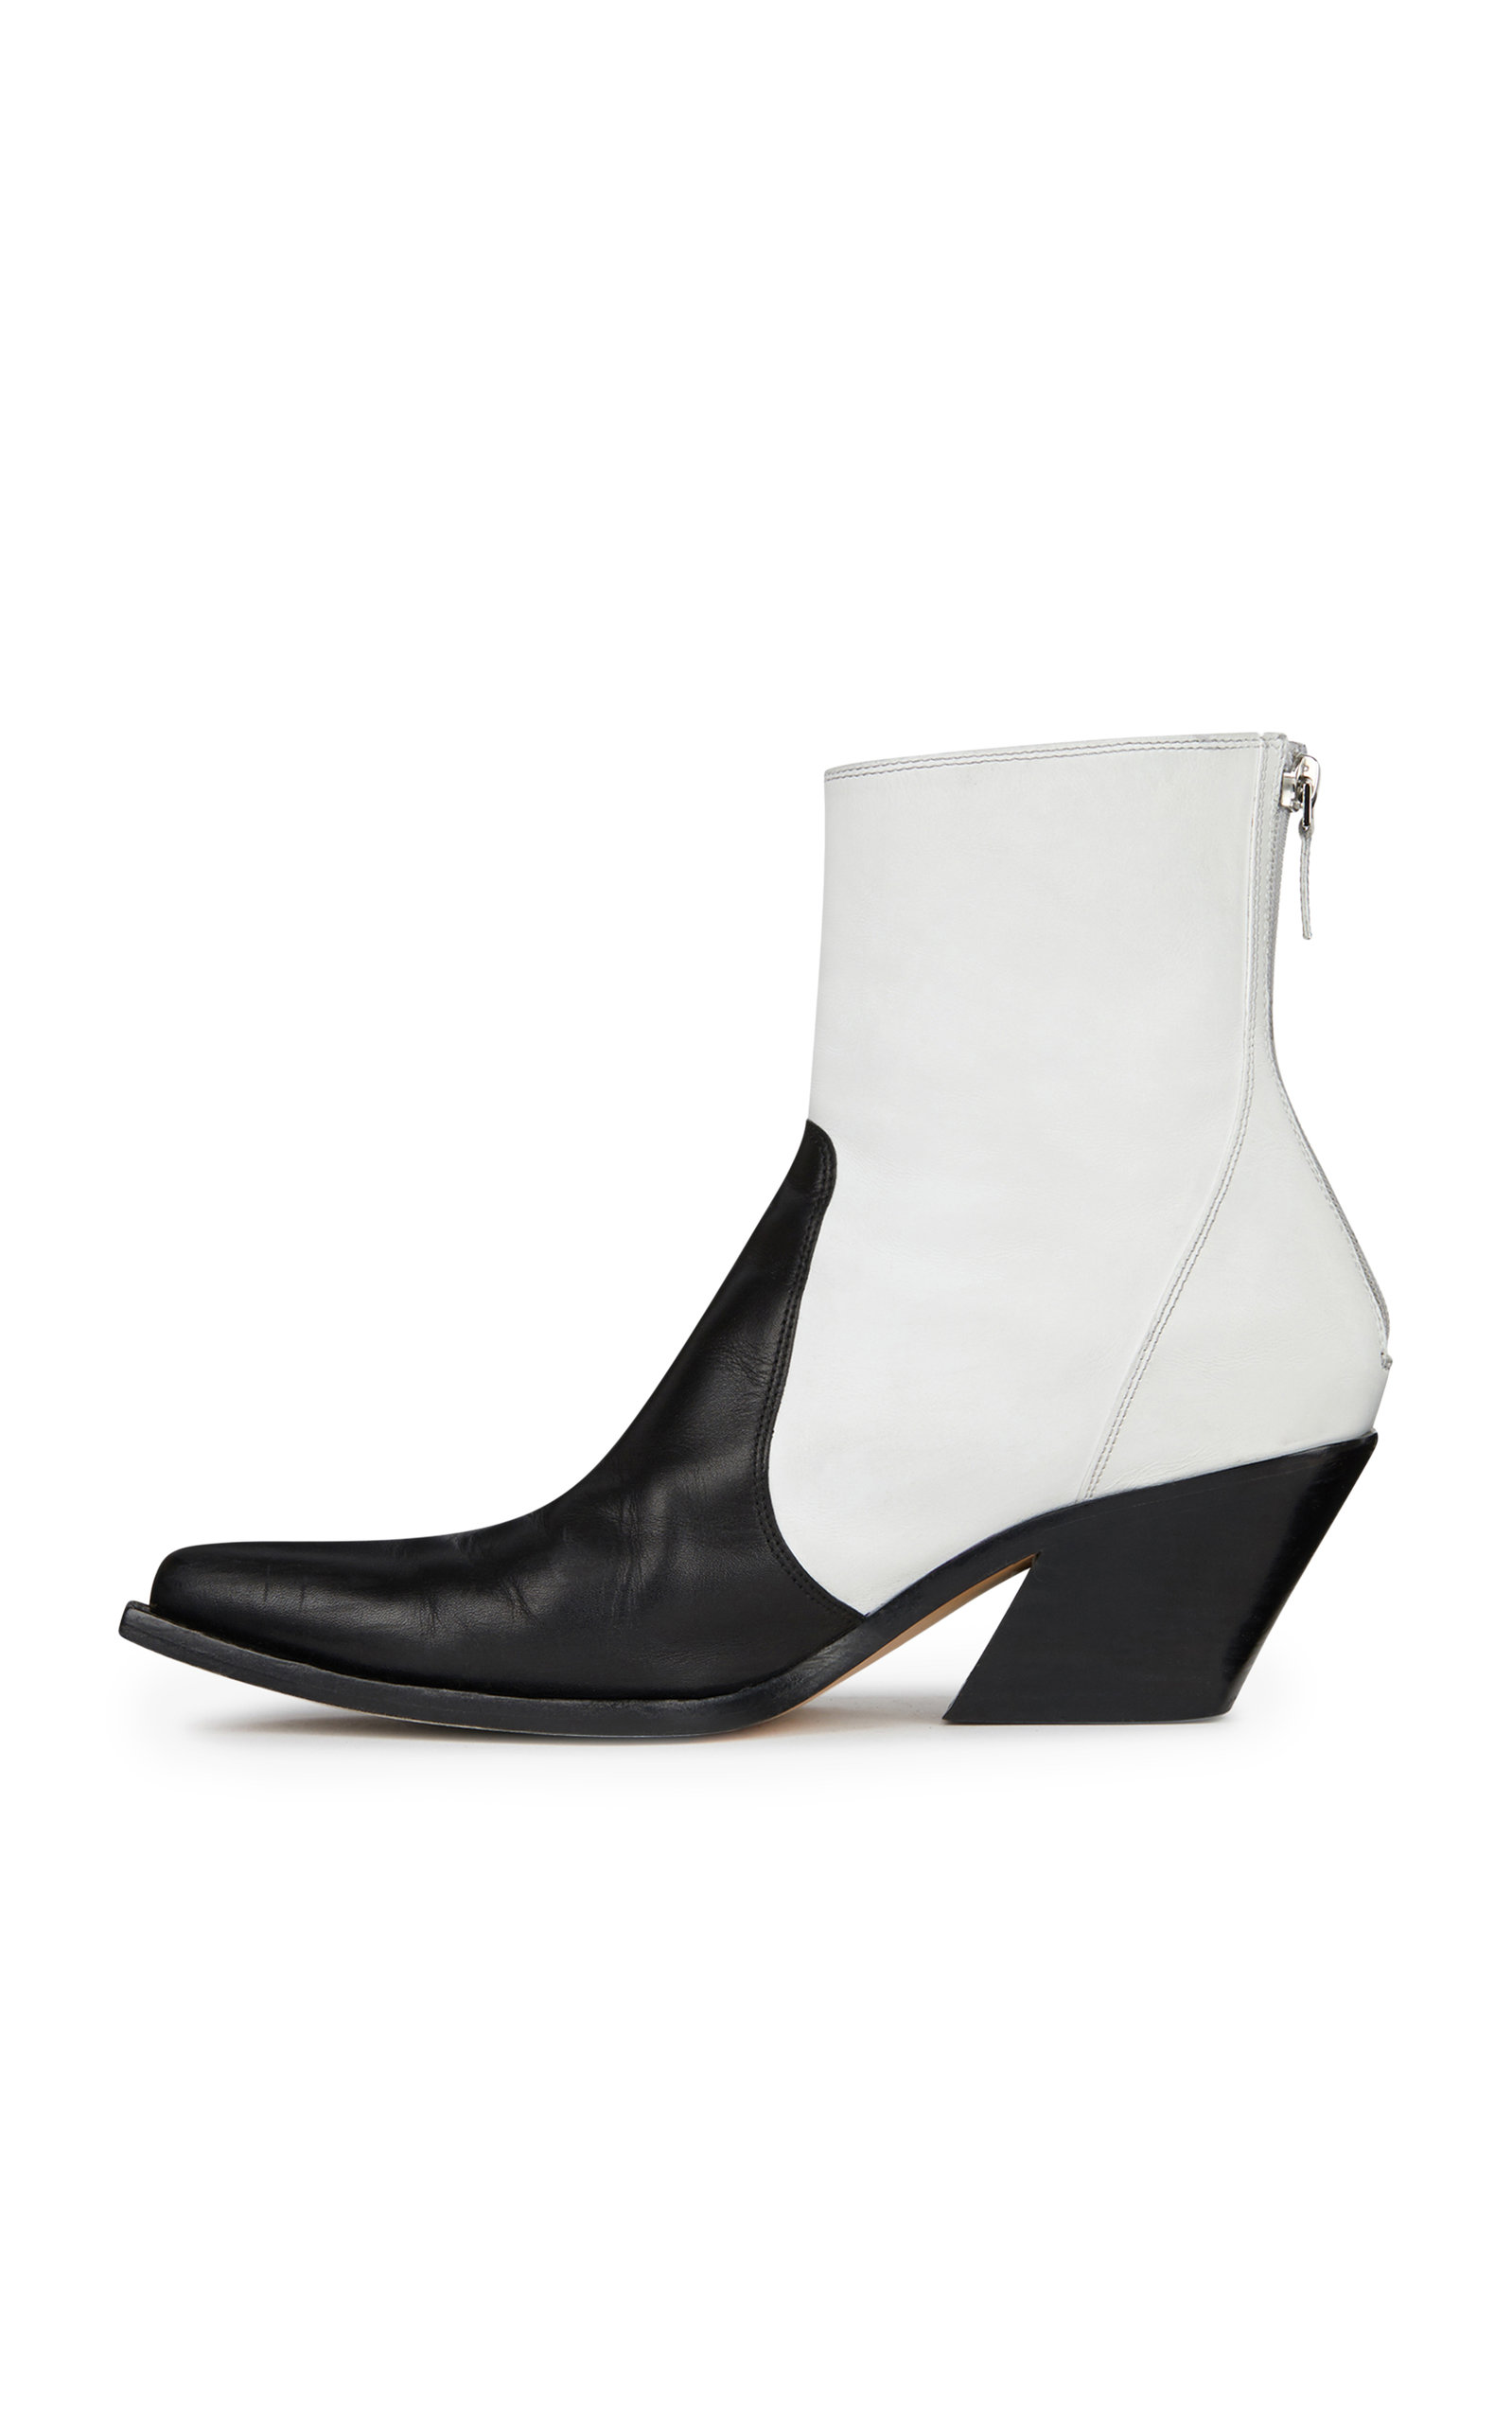 Amazing Price Cheap Online Paneled Leather Cowboy Boots Givenchy 2018 Newest Cheap Price W02Qqy6